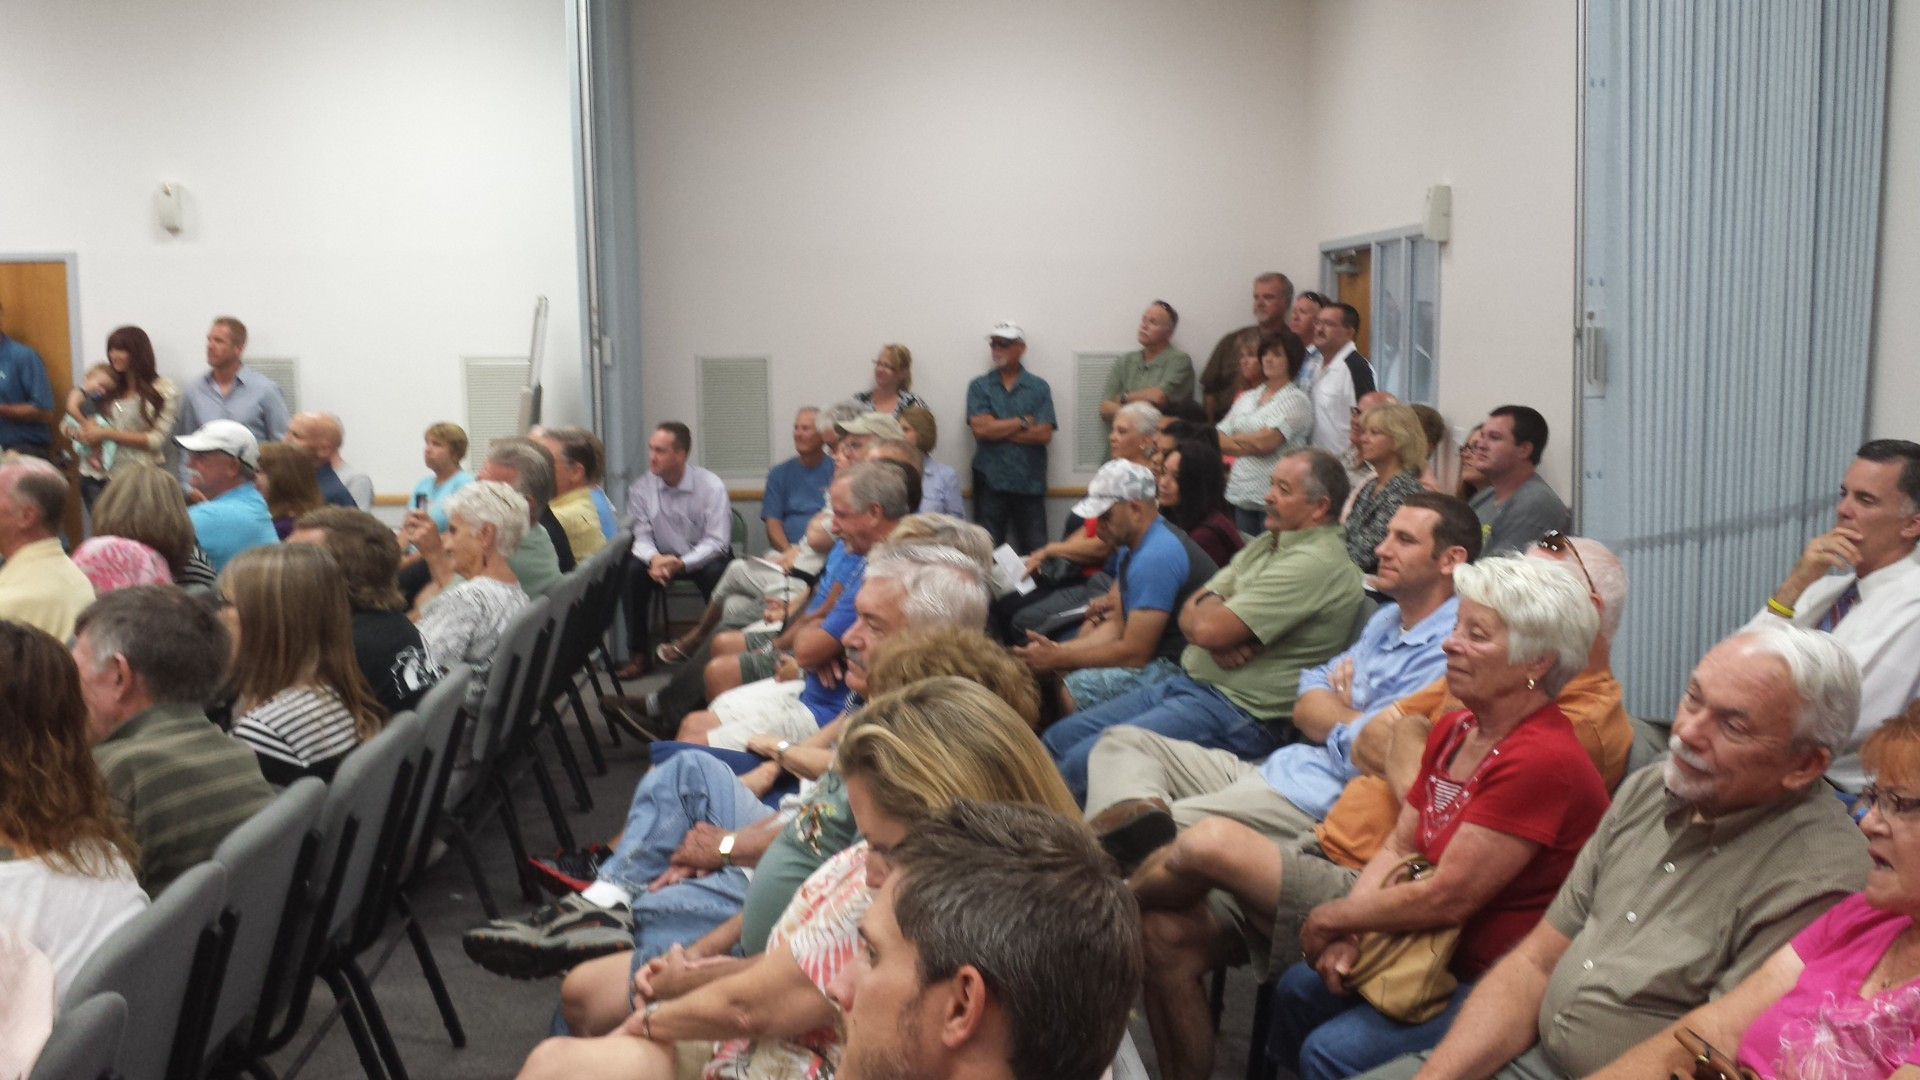 Dixie Springs residence show up in force, at Hurricane City Council. Hurricane City, Utah. August 21, 2014 | Photo by T.S Romney St. George News